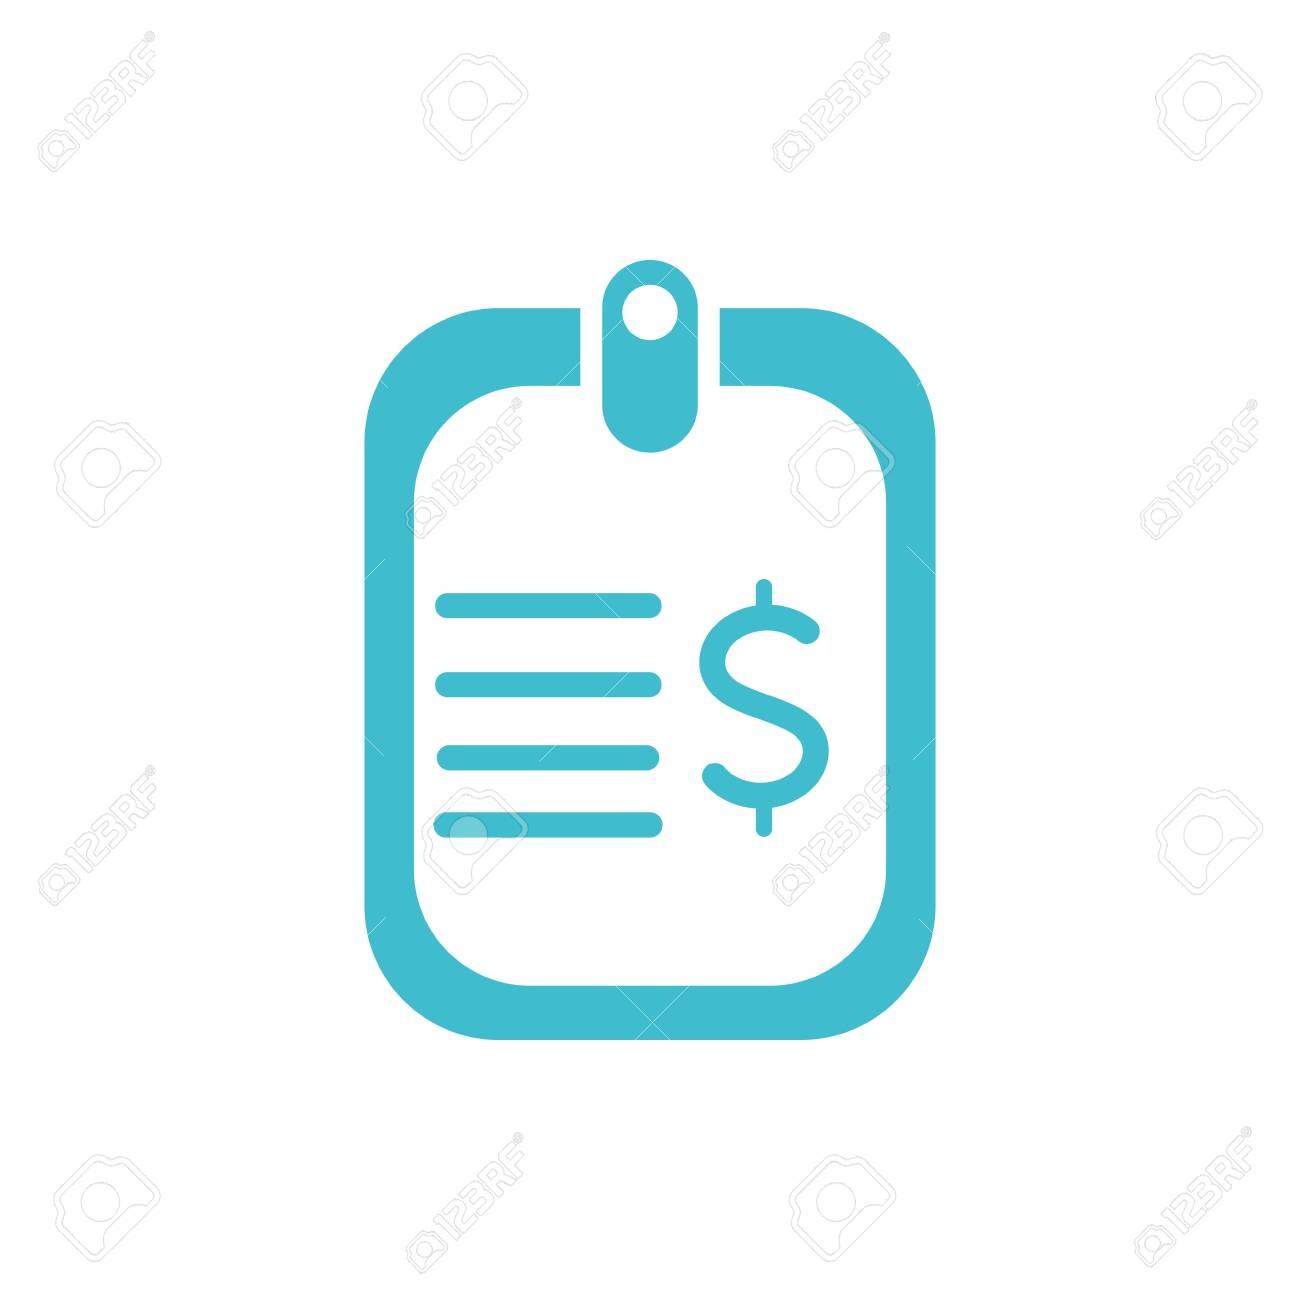 card money business finance color silhouette - 133218036